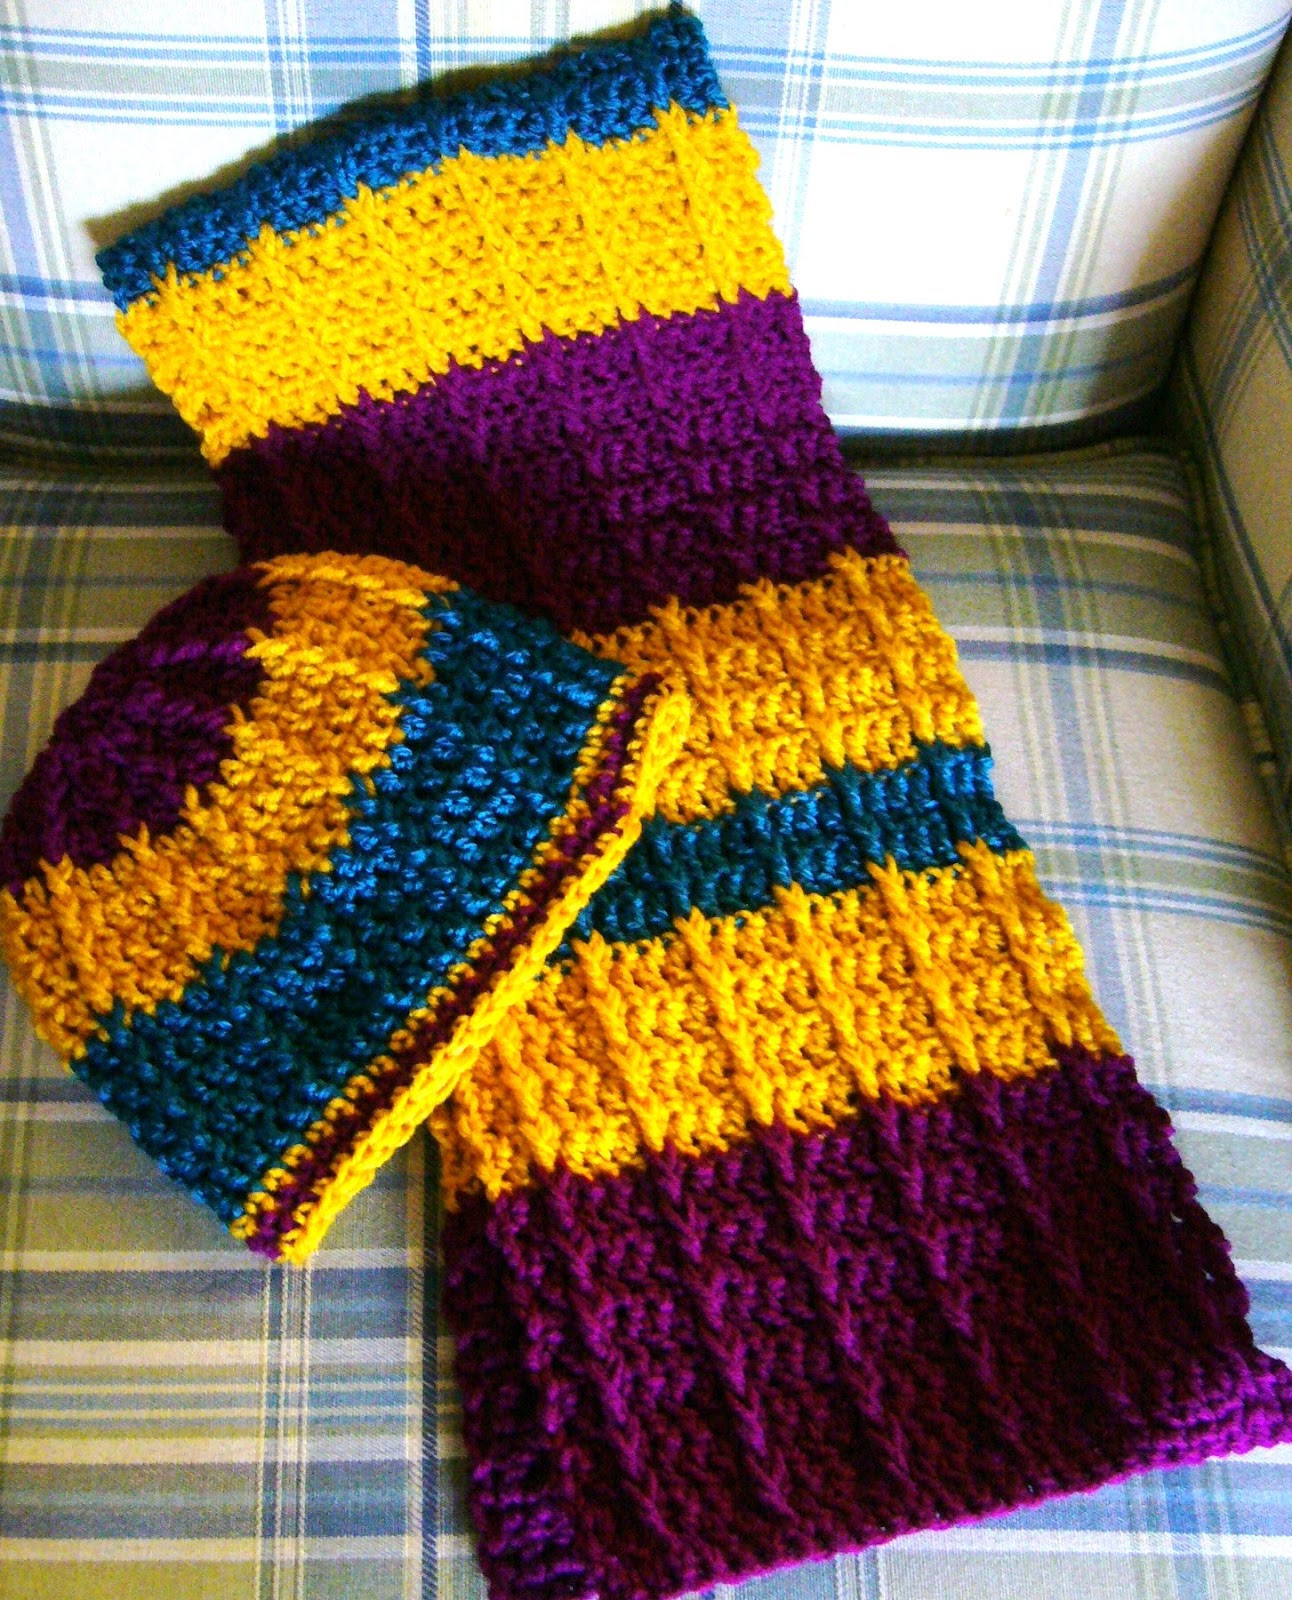 Best Of Simply Shoeboxes Double Crochet Front Post Crochet Scarf Crochet Post Stitch Of Incredible 45 Images Crochet Post Stitch